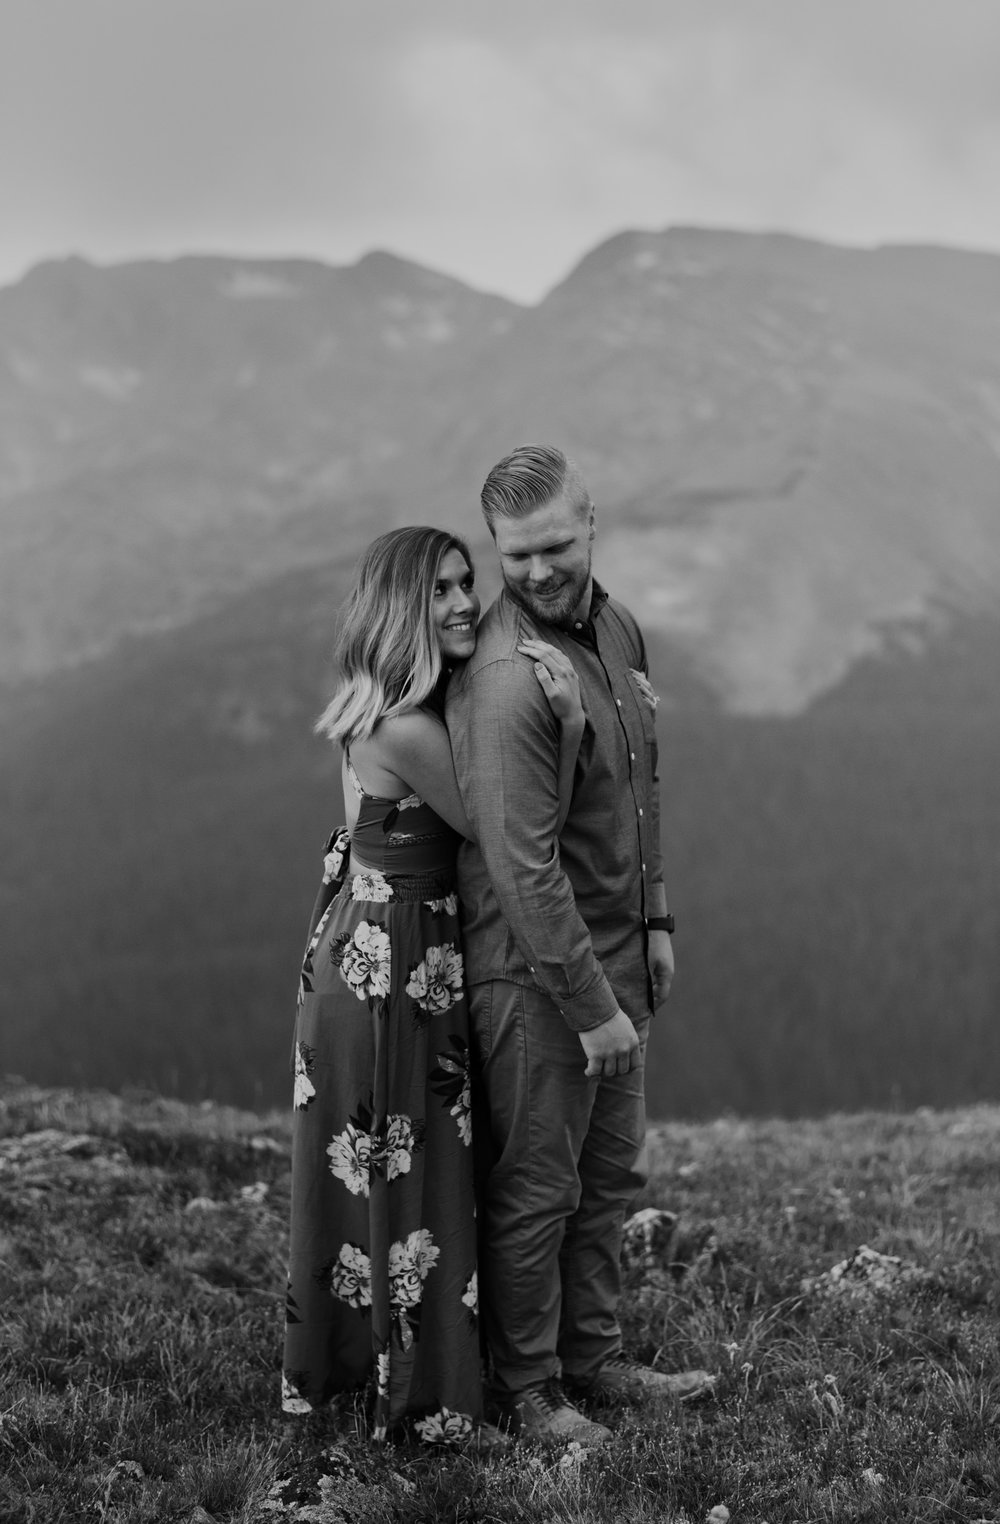 Denver wedding photographer. Colorado elopement photographer.